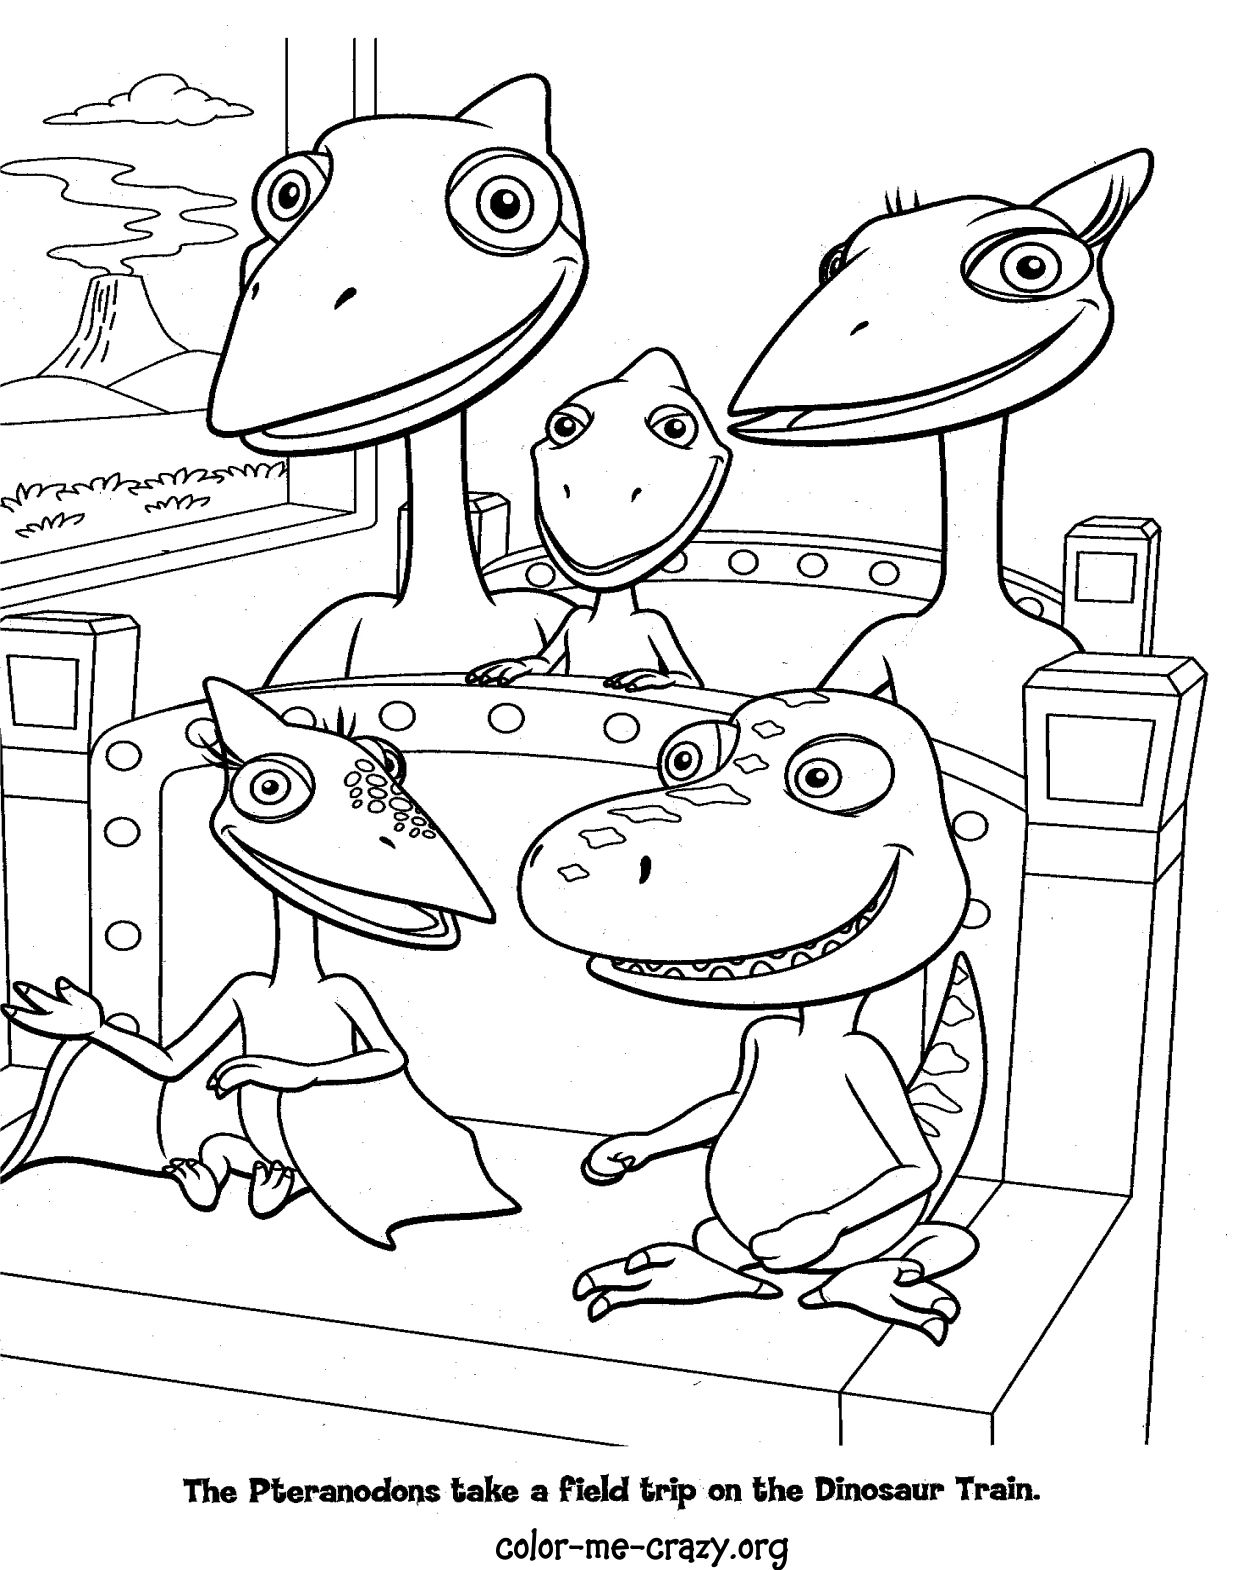 free printable coloring pages dinosaur train | ColorMeCrazy.org: Dinosaur Train Coloring Pages